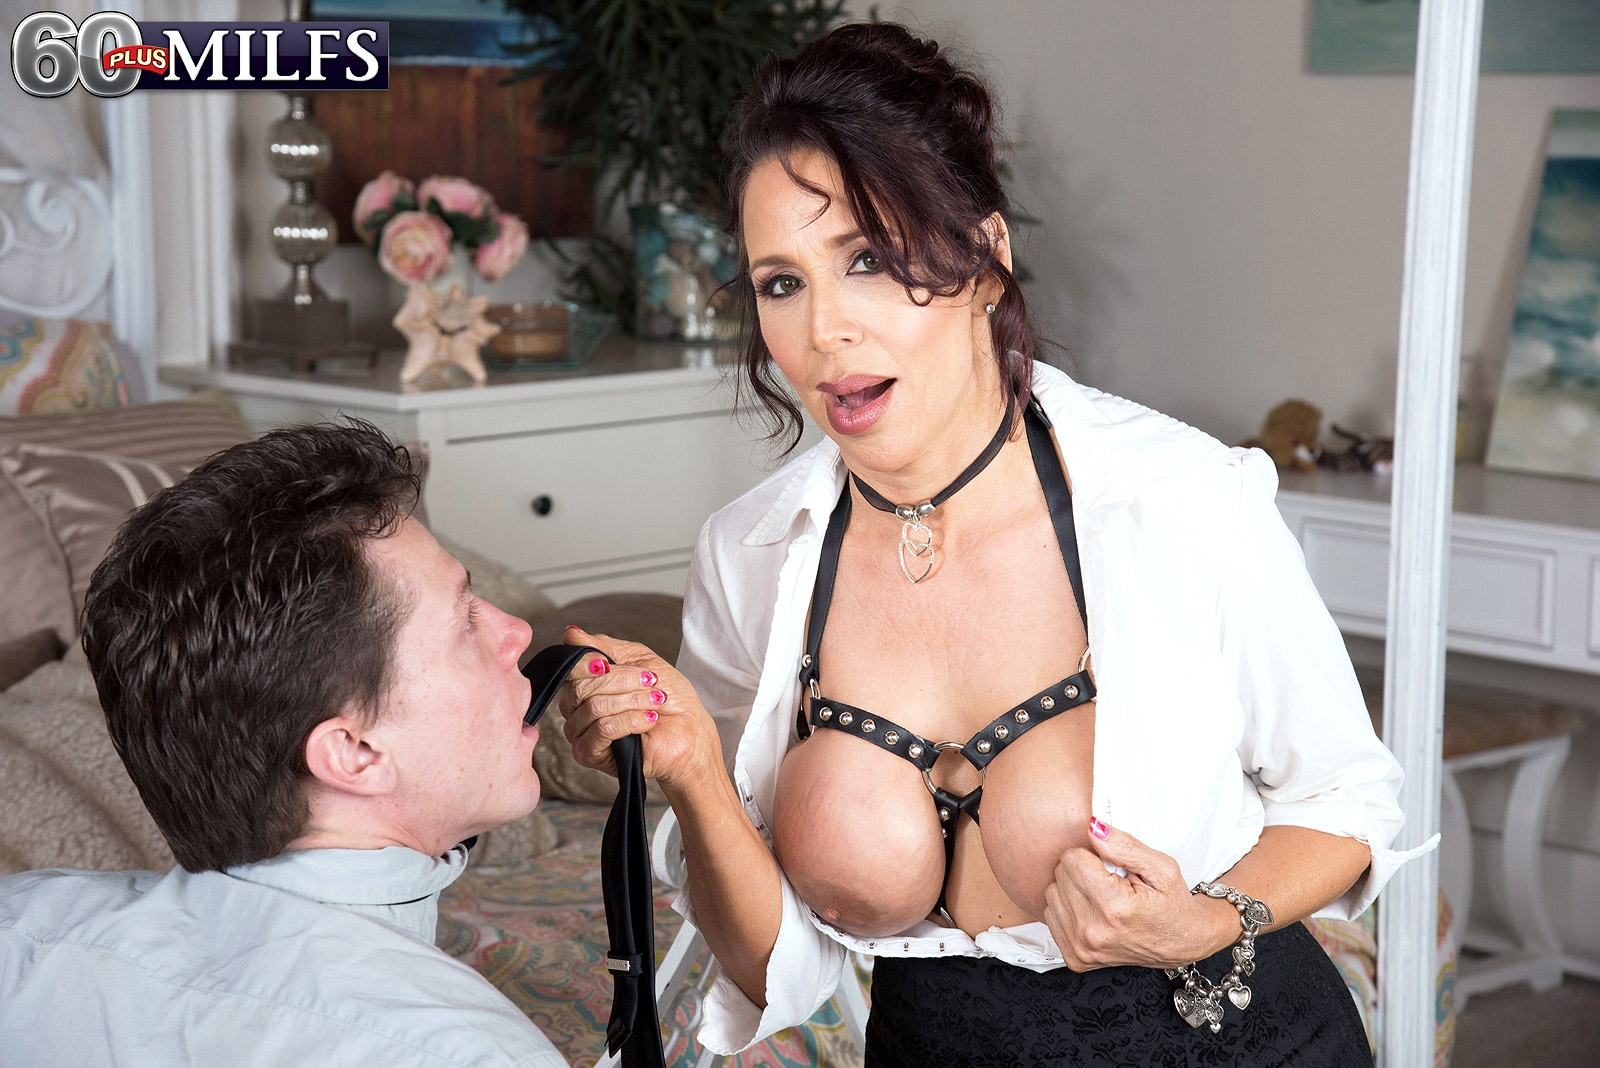 Hot grandmother Lisa Marie Heart entices a younger guy in a choker and limit bondage harness